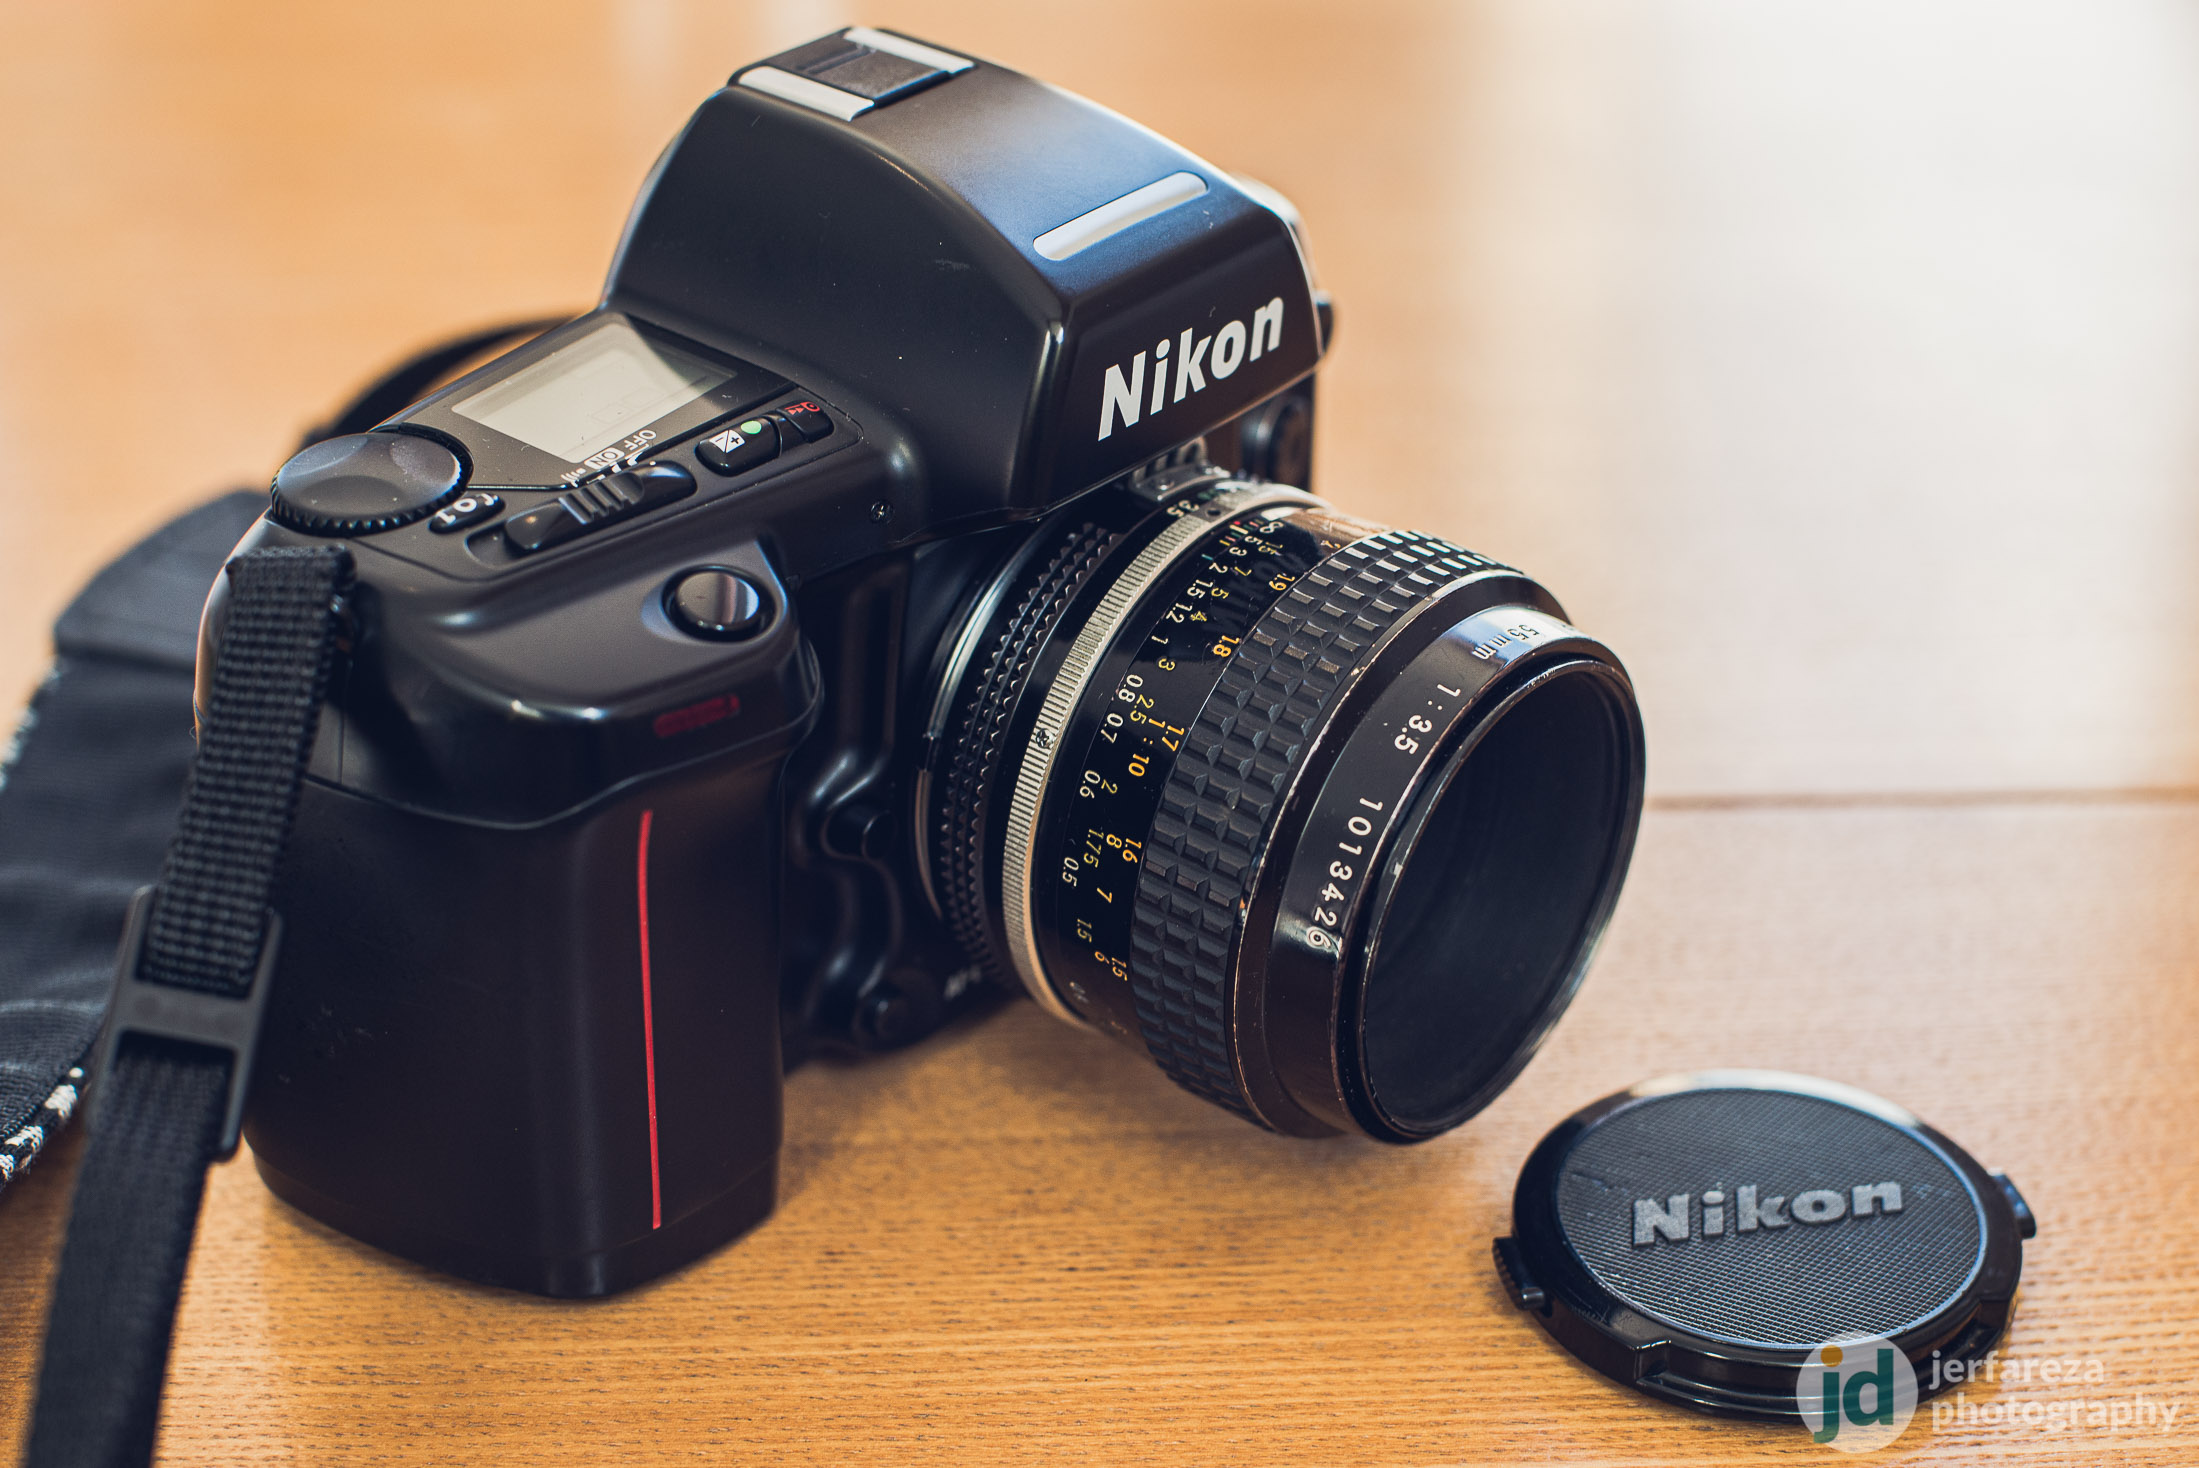 [Lens Review] Nikkor 55mm f/3.5 AI Micro